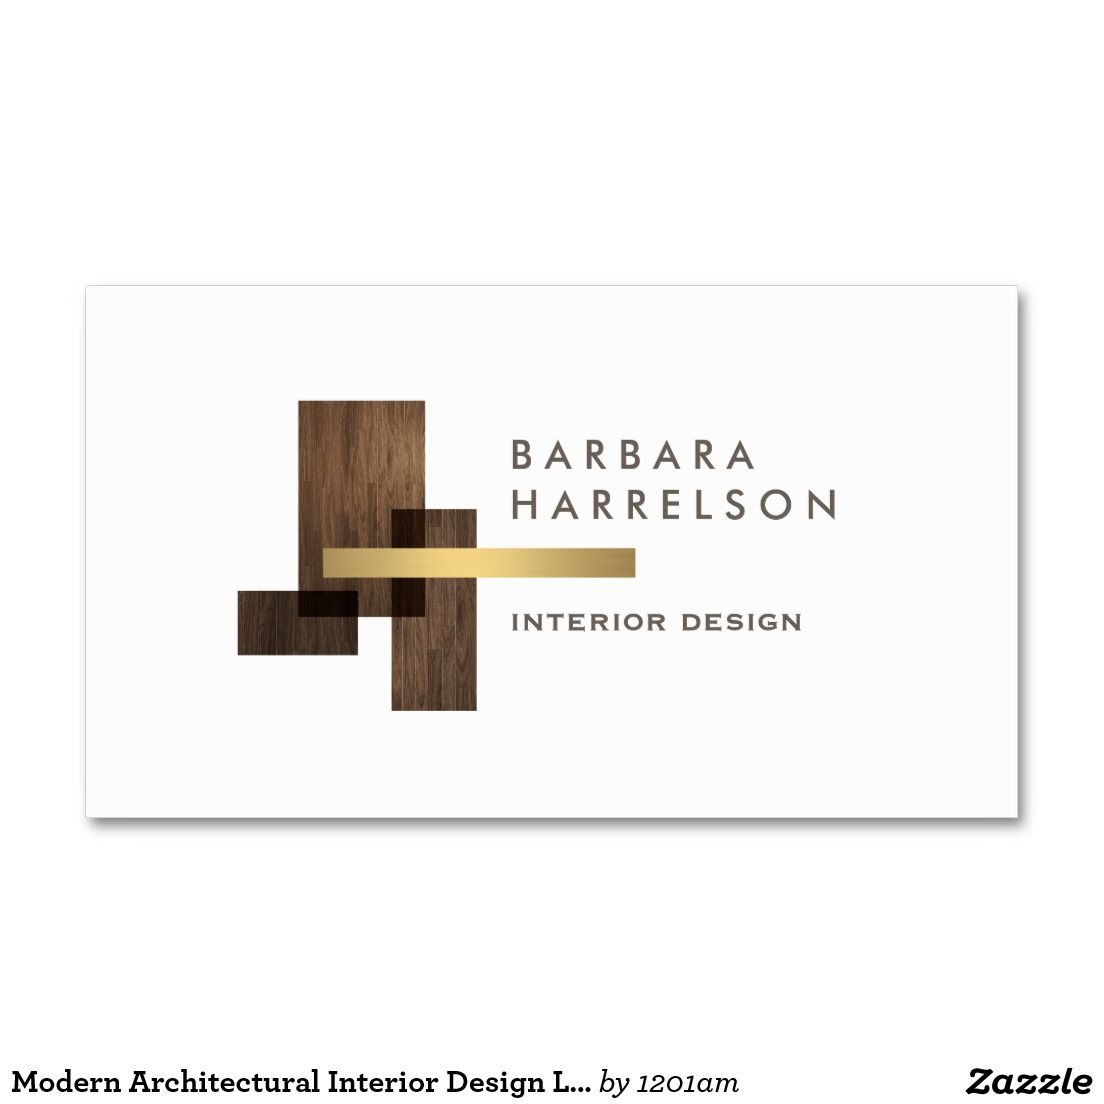 Modern architectural interior design logo and business card template ready to personalize also yasemin yaseminnbolat on pinterest rh